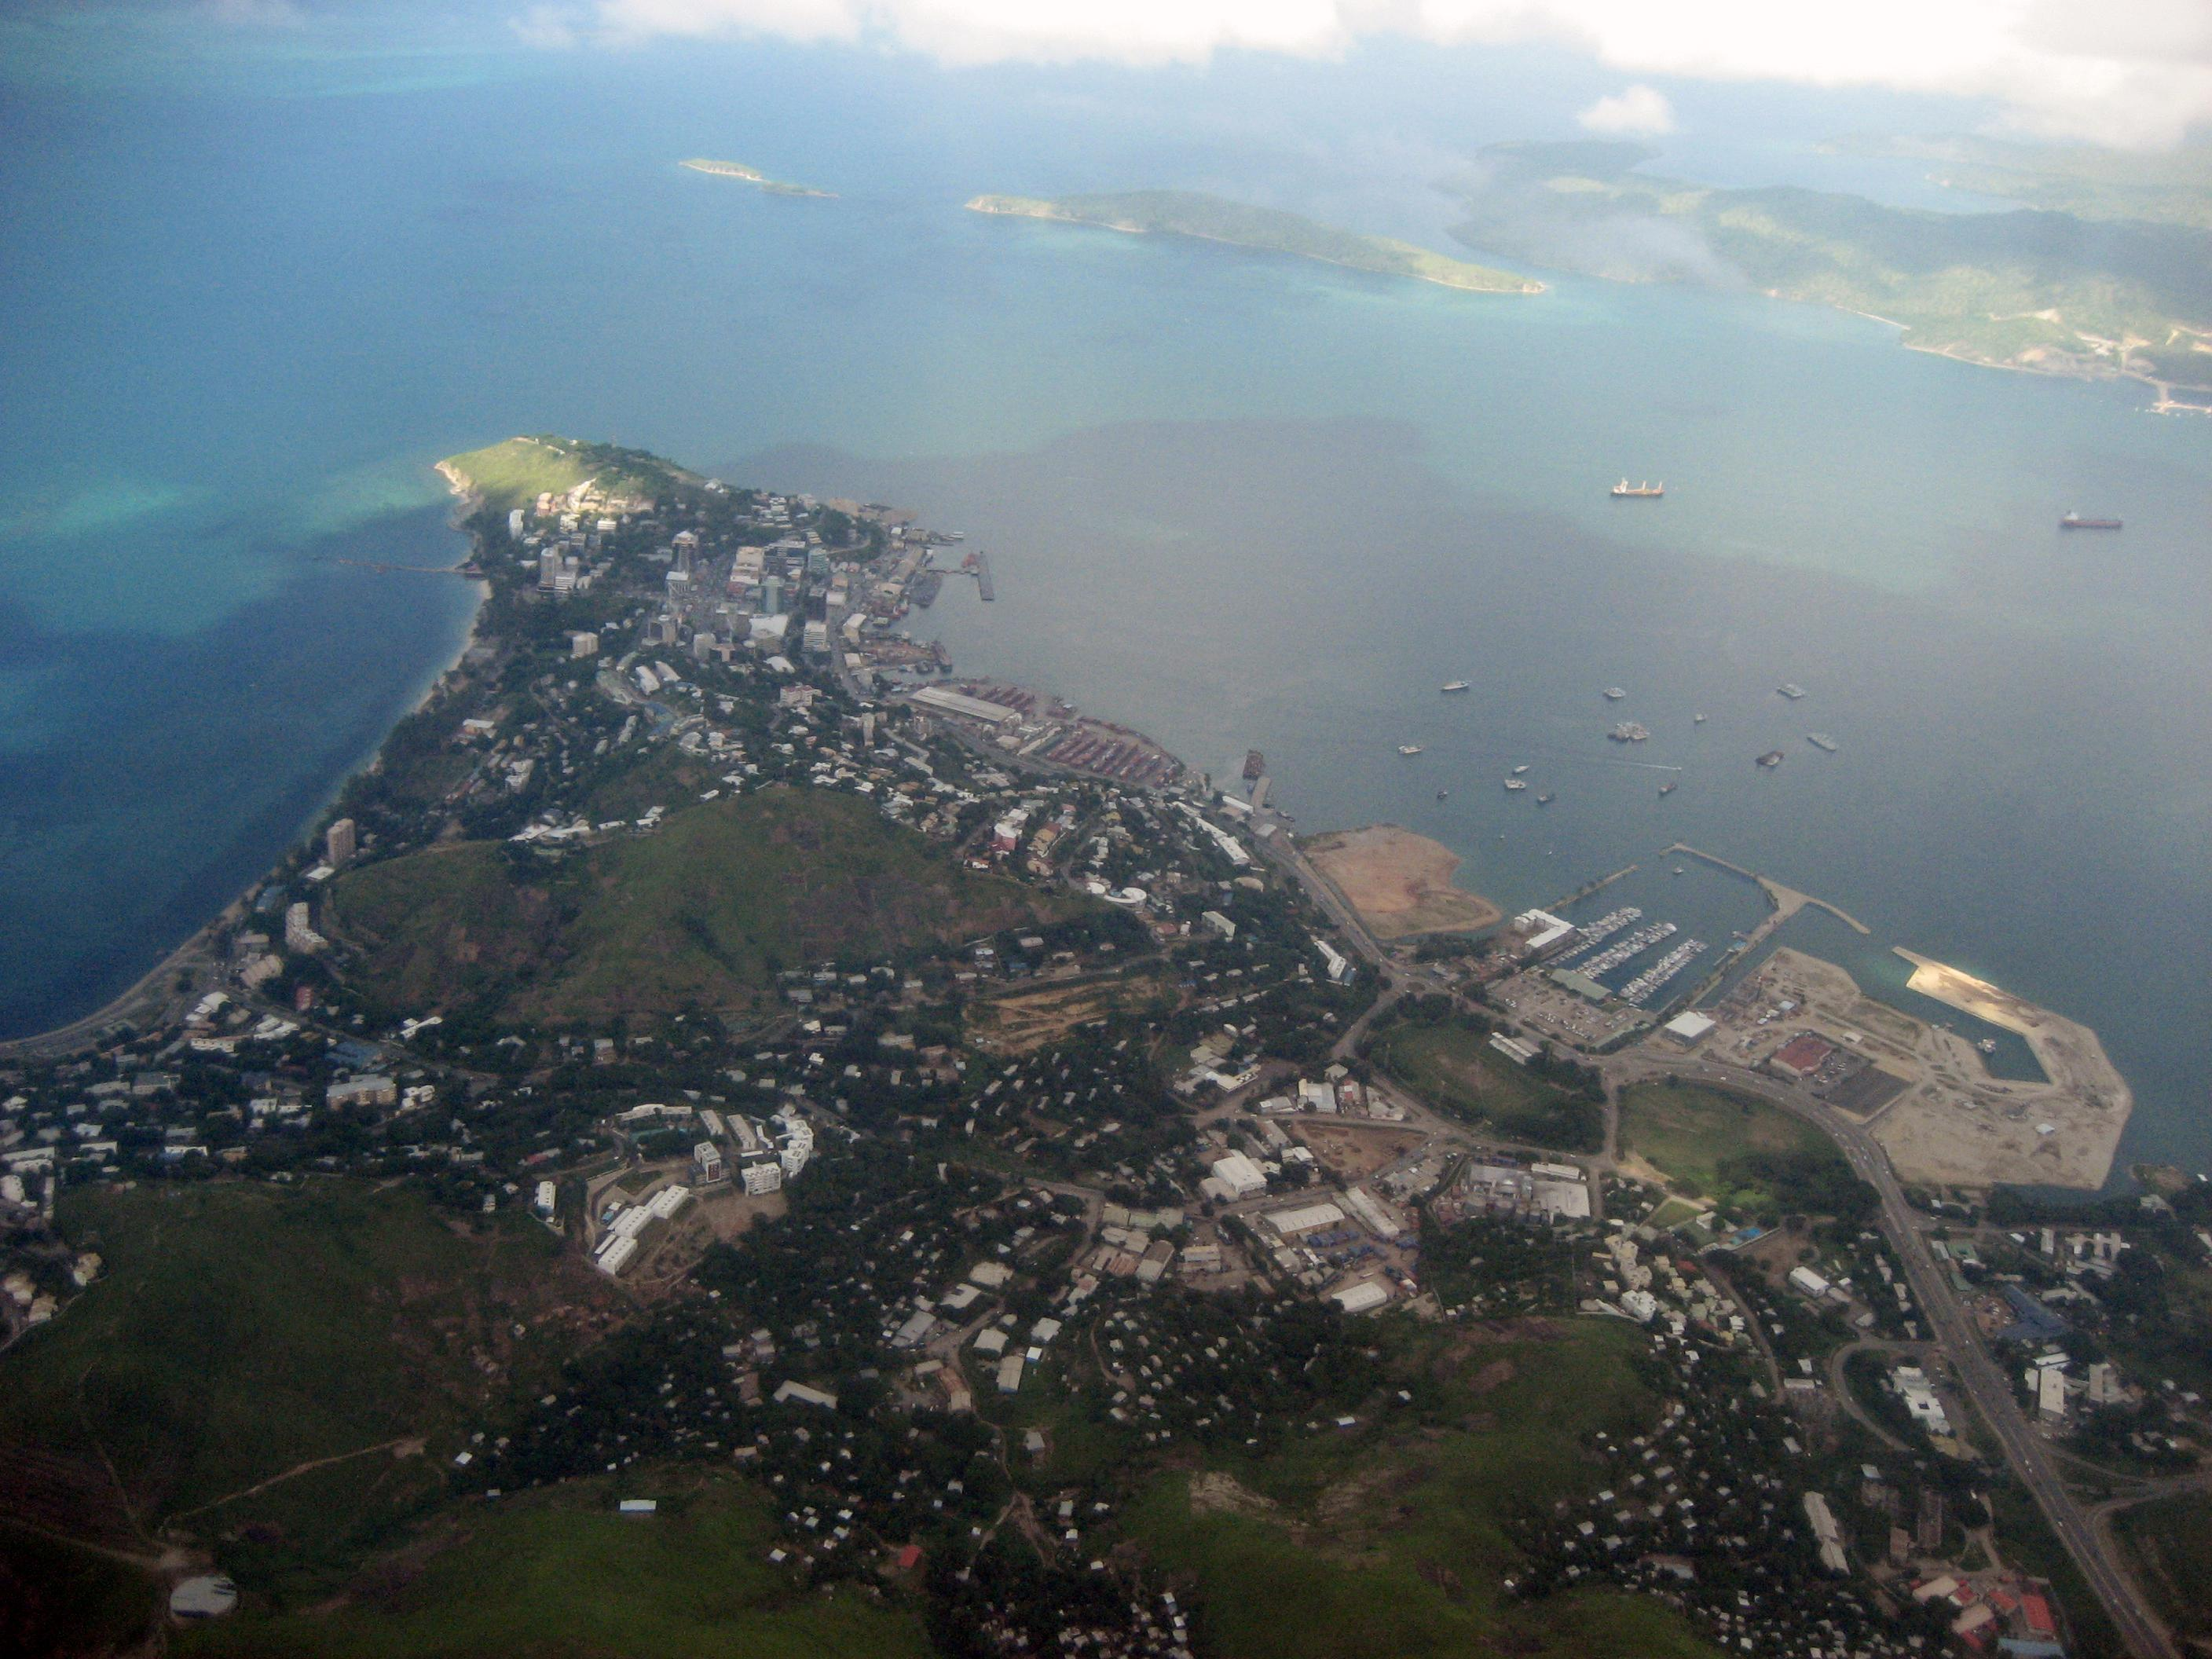 File:Aerial view of Port Moresby.jpg